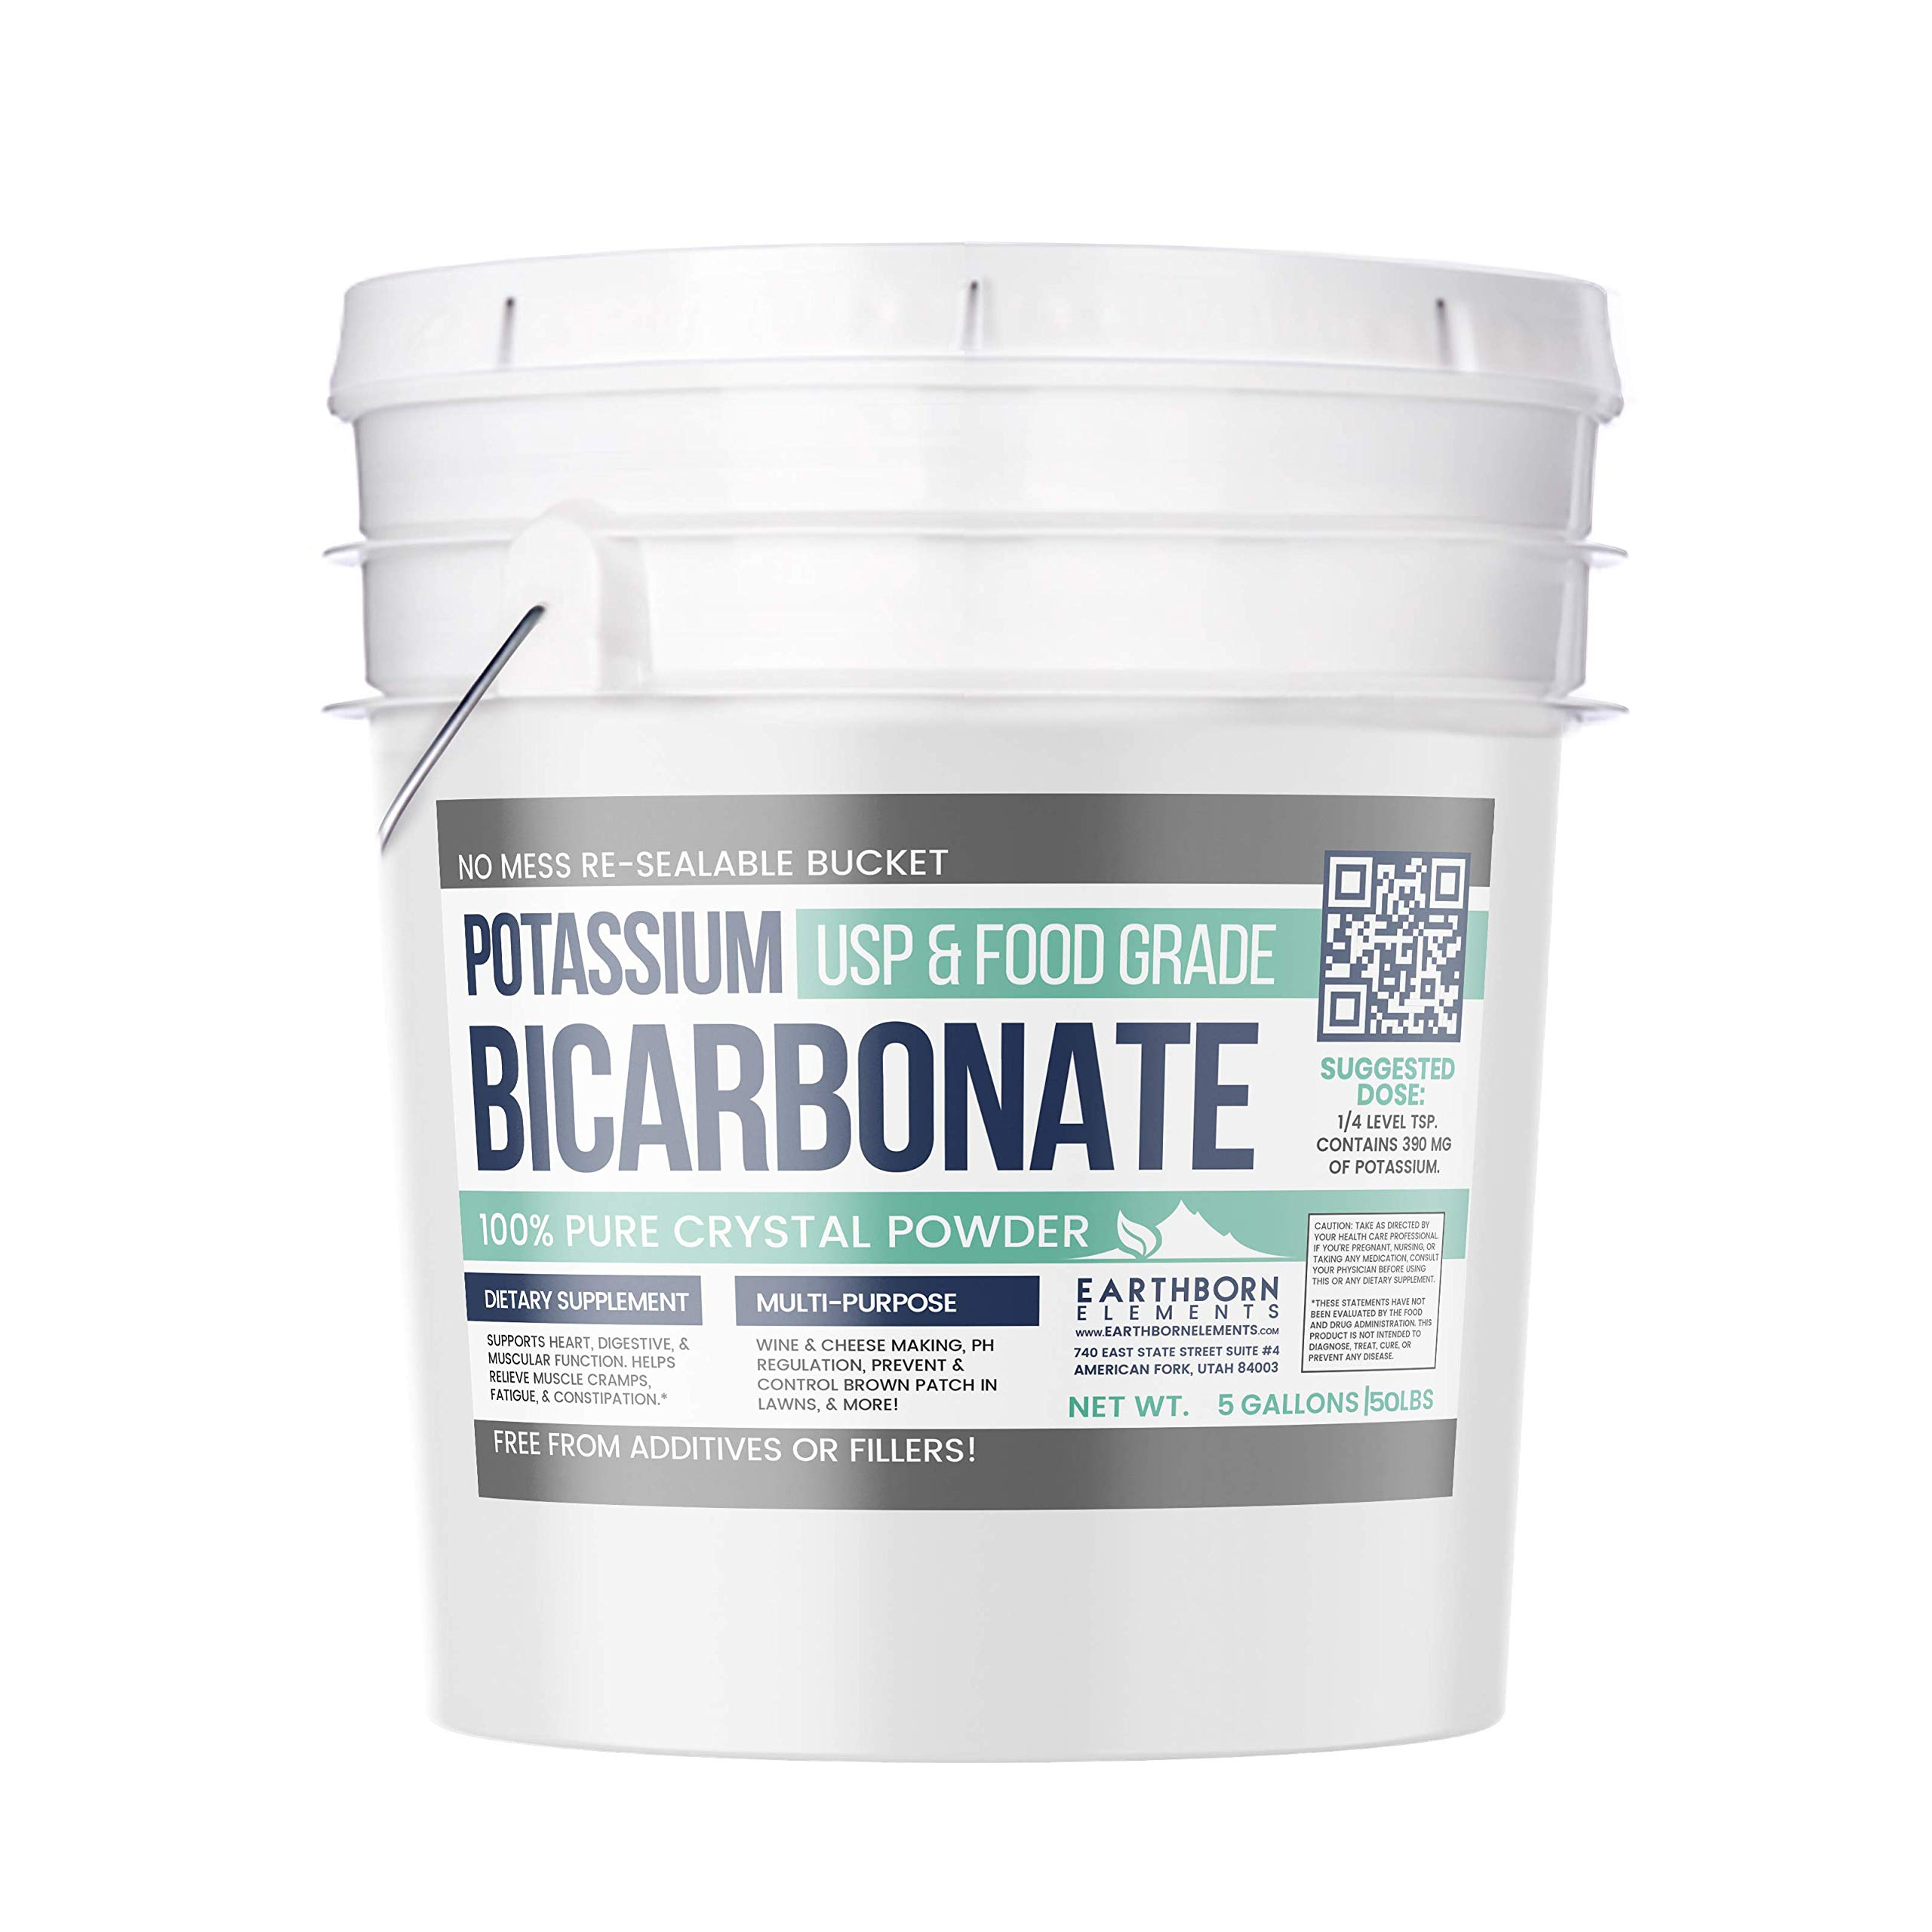 Potassium Bicarbonate (5 Gallon, 50 lbs,) by Earthborn Elements, Highest Purity, Food and USP Pharmaceutical Grade